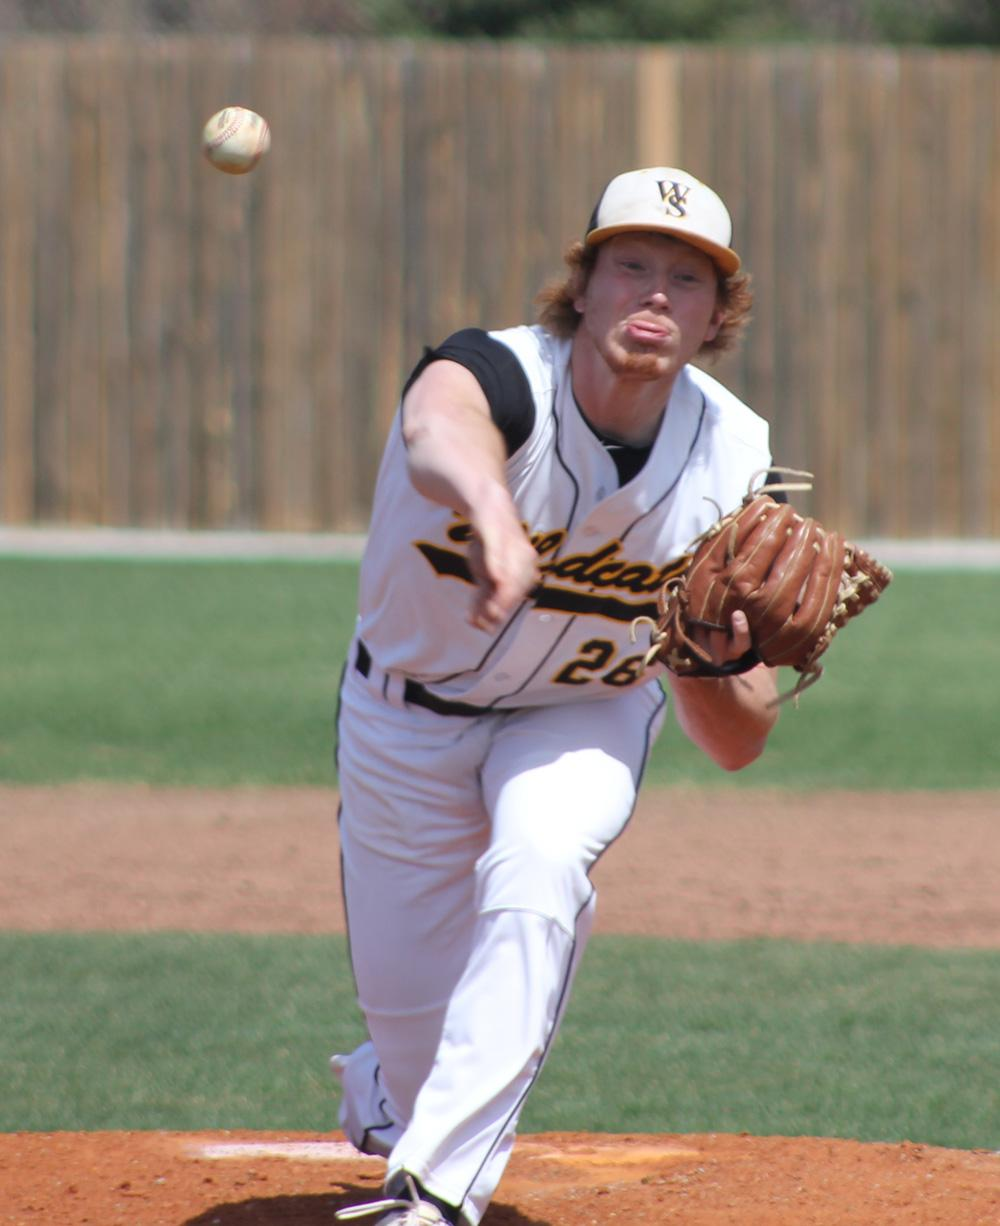 Eric Browning recorded another great performance on the mound for the Wildcats against Augustana